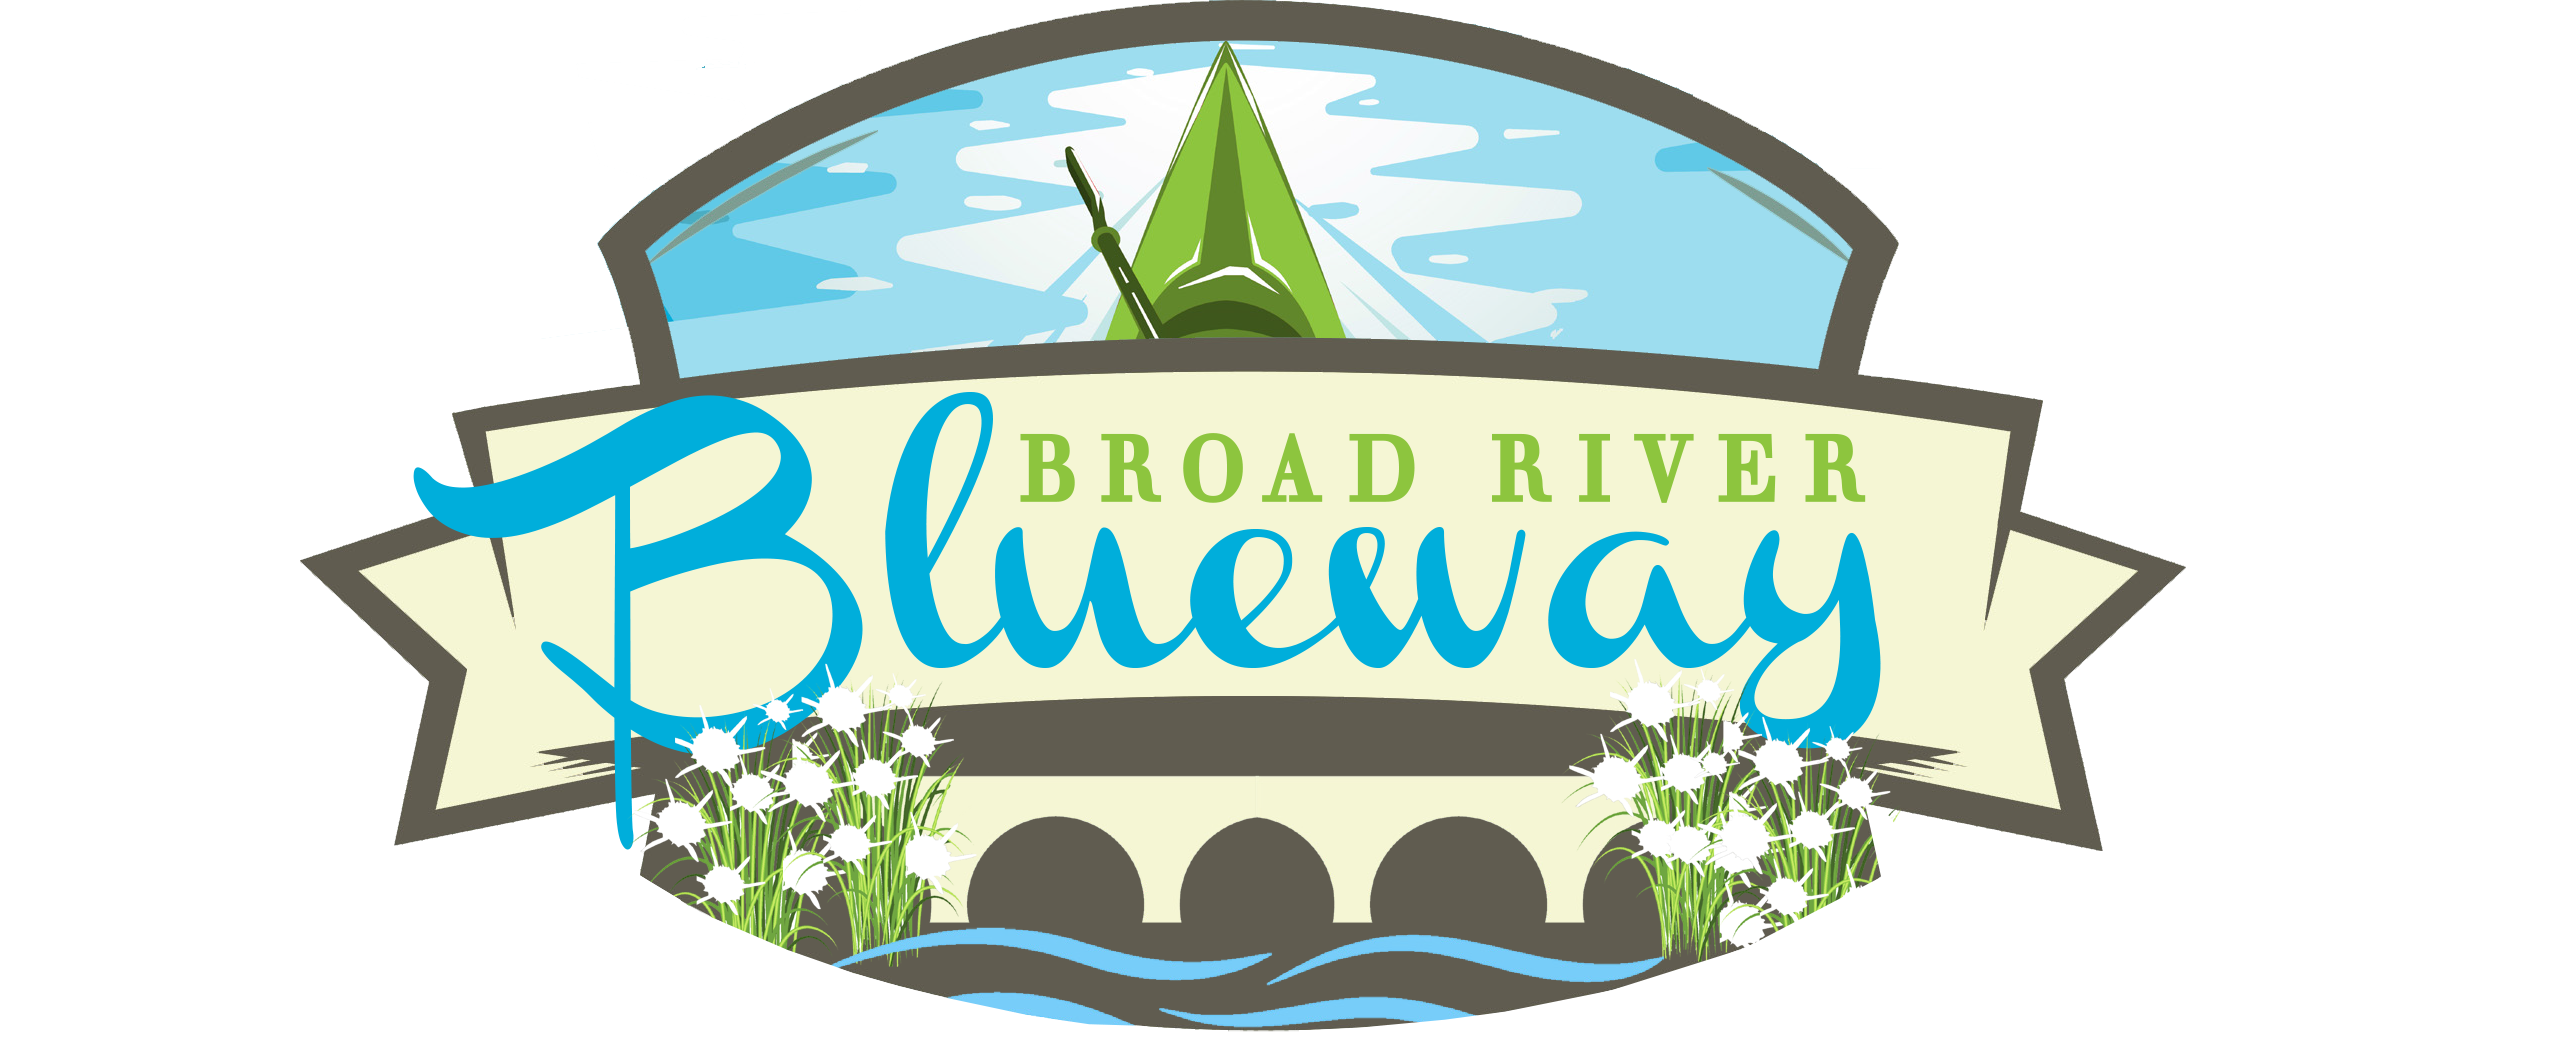 Hills clipart river flow. Broad the blueway in